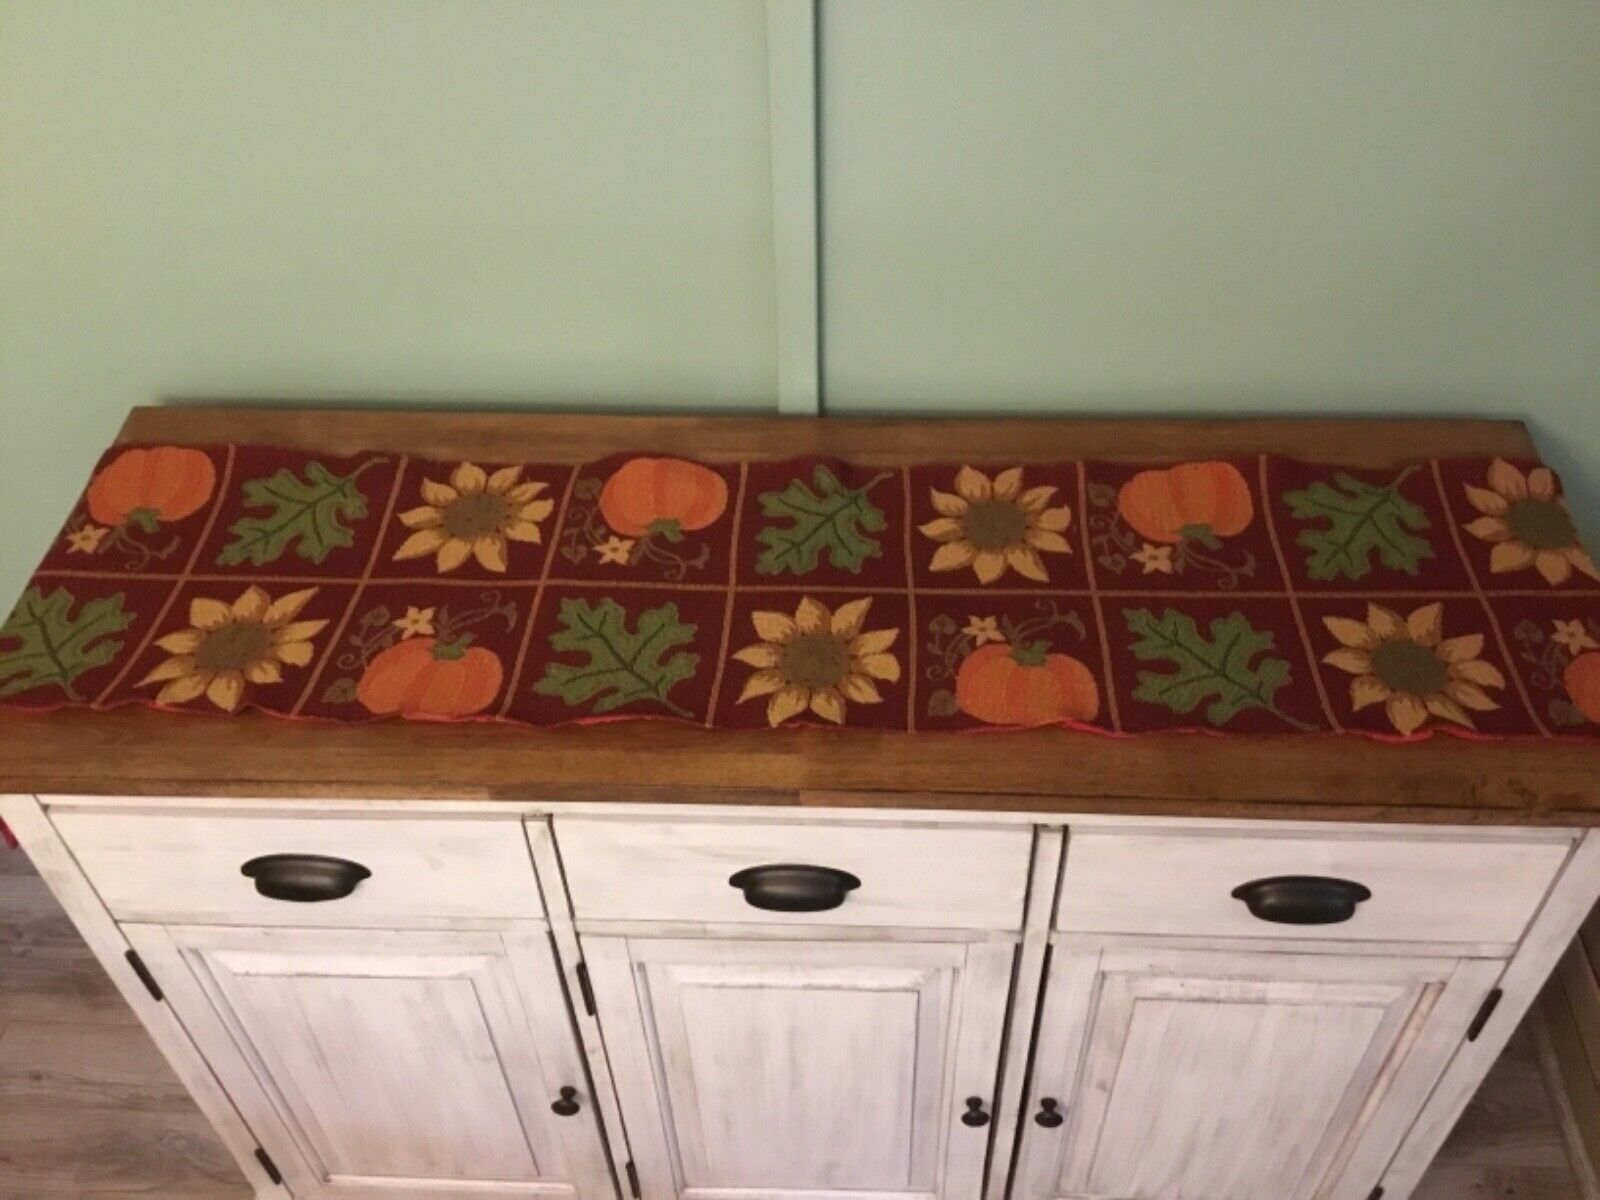 Autumn Fall Leaves Pumpkins Sunflowers Tapestry Table Runner 13 X 72 For Sale Online